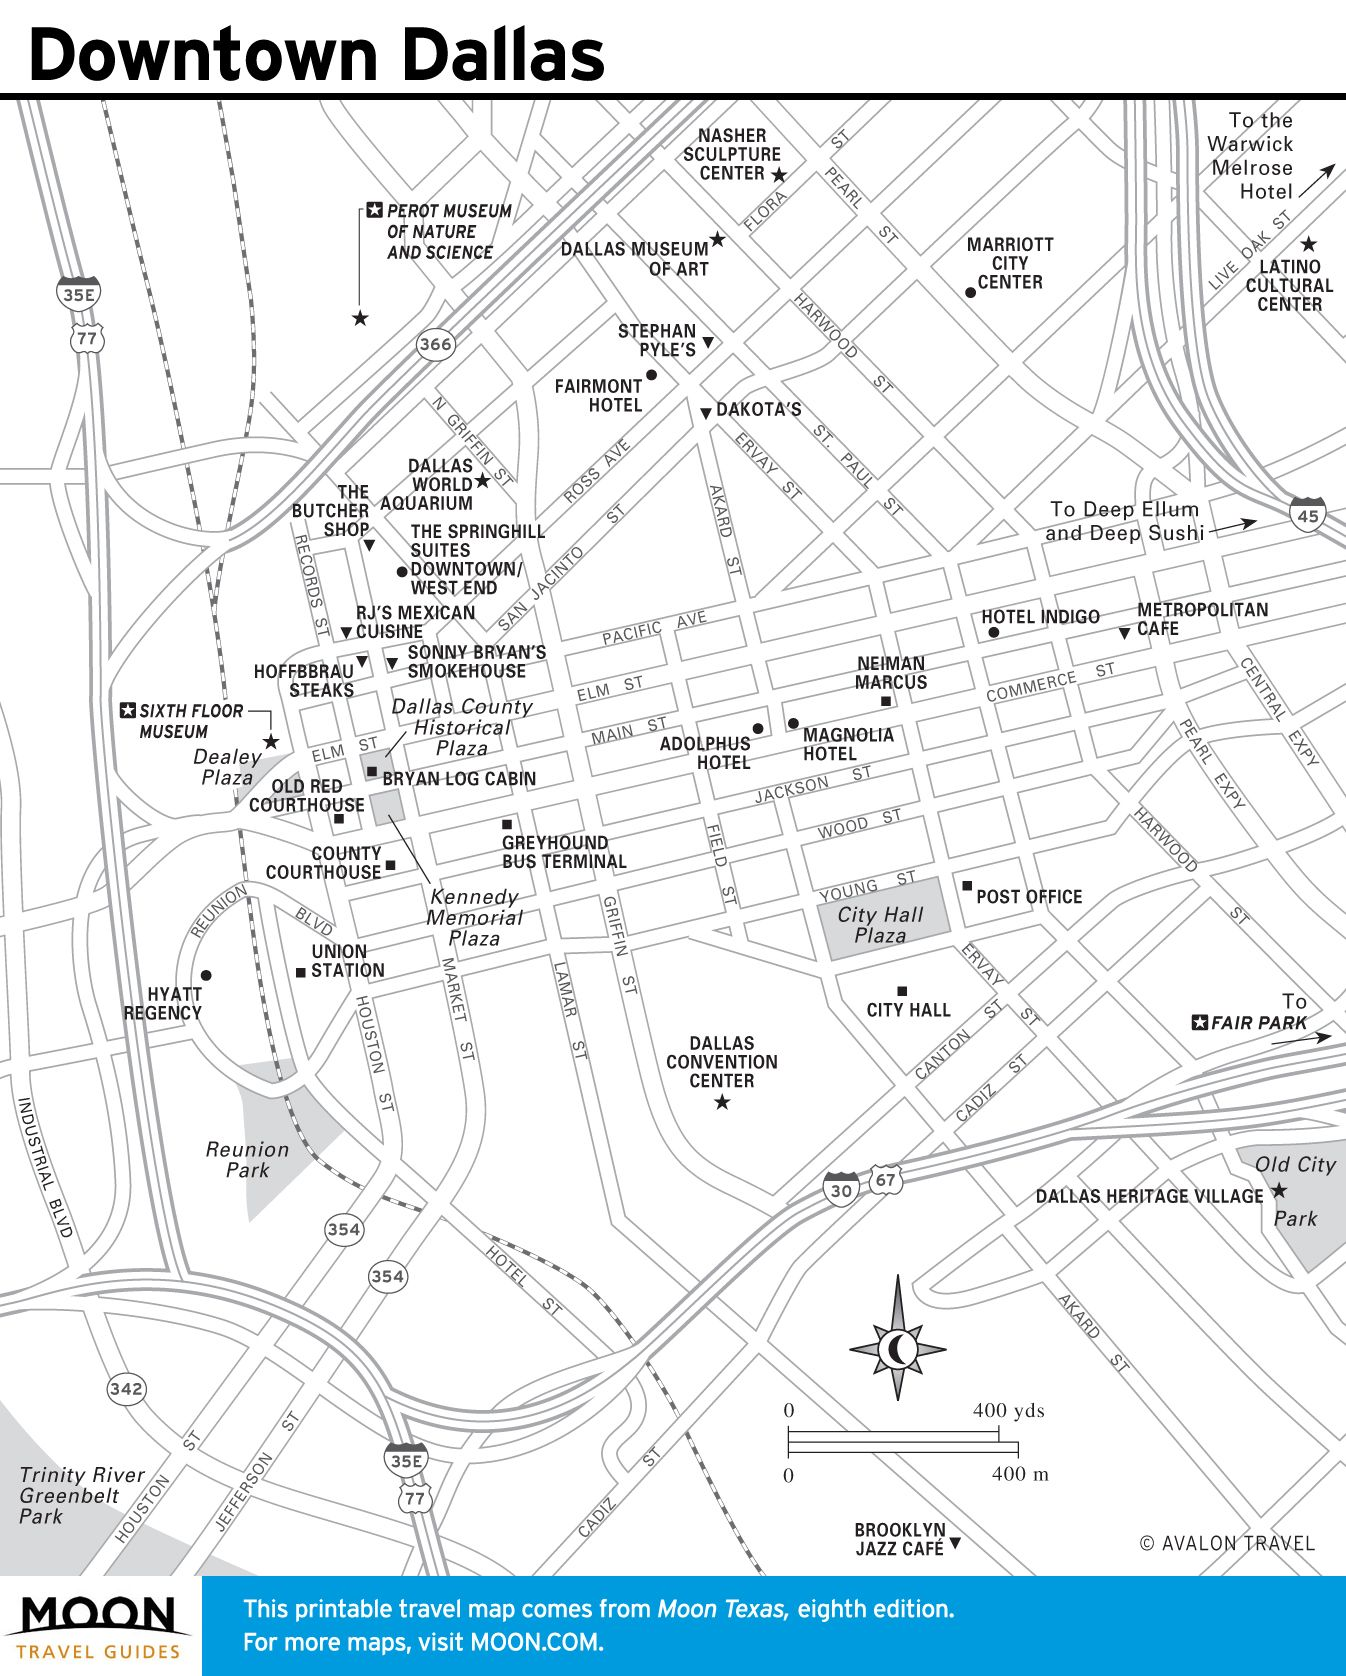 Printable Travel Maps Of Texas Maps Texas And Dallas - Map of houston hotels downtown